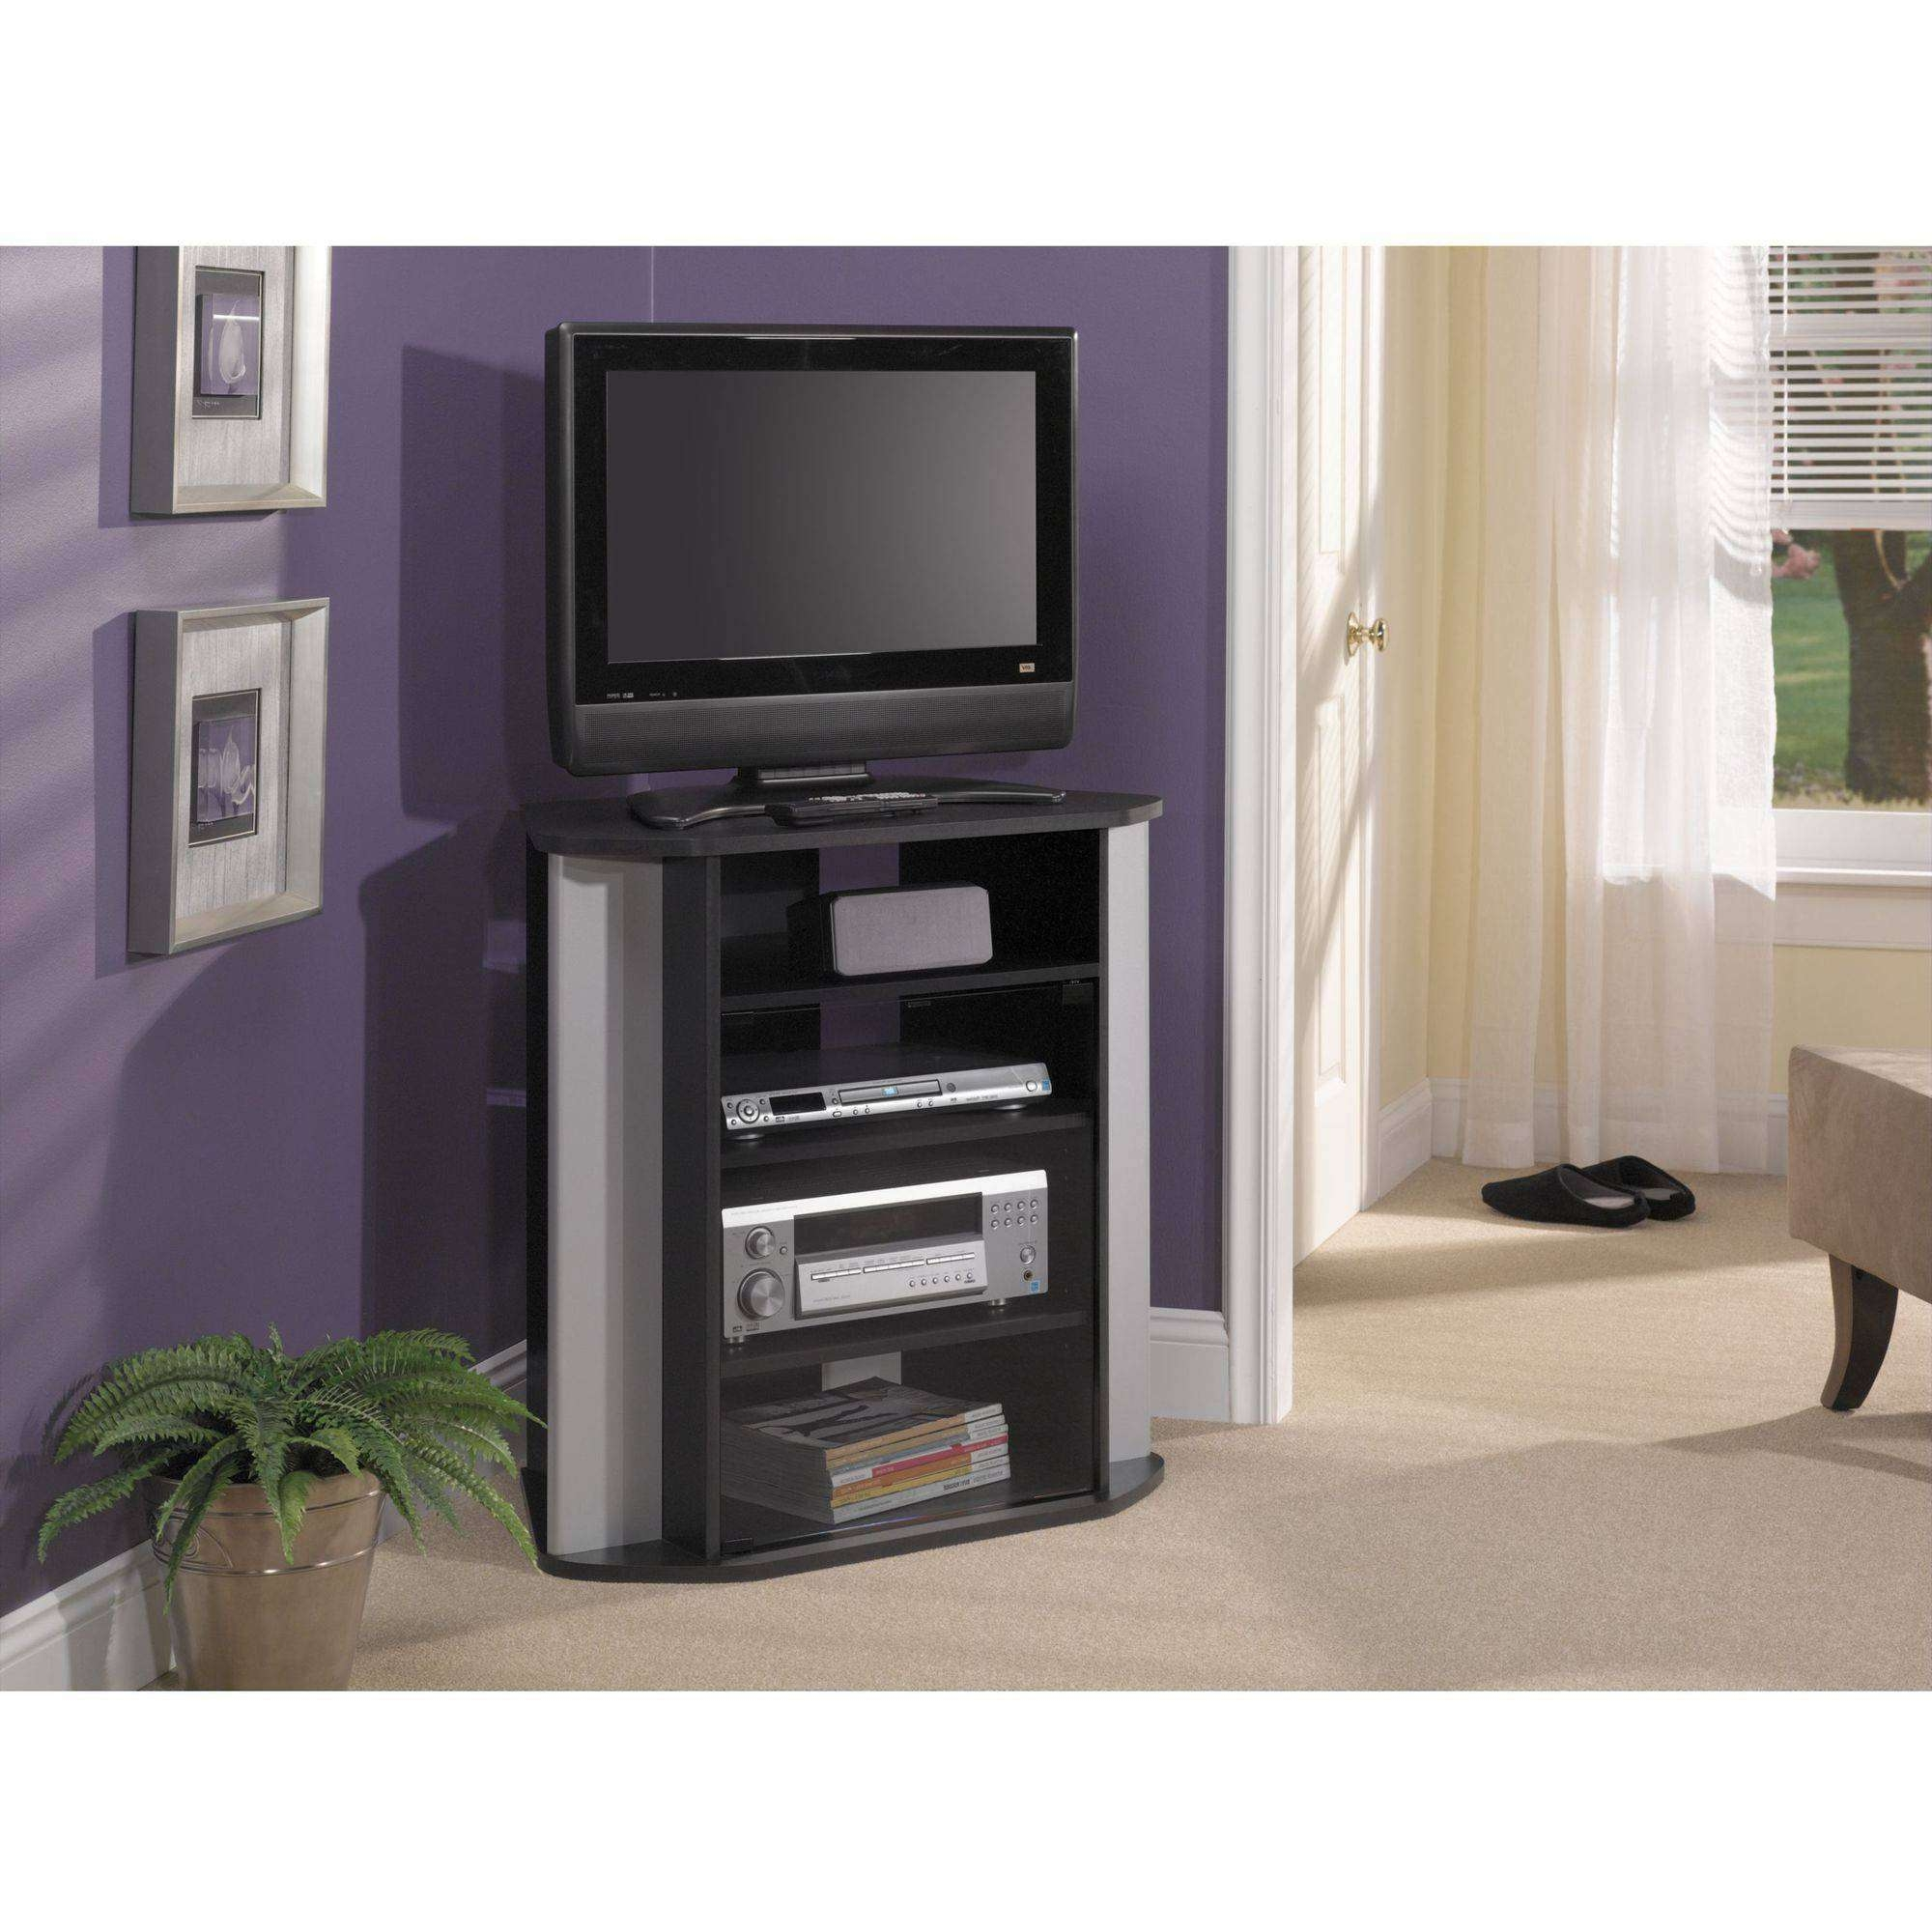 Bush Visions Black Tall Corner Tv Stand, For Tvs Up To 37 With Silver Corner Tv Stands (View 1 of 15)